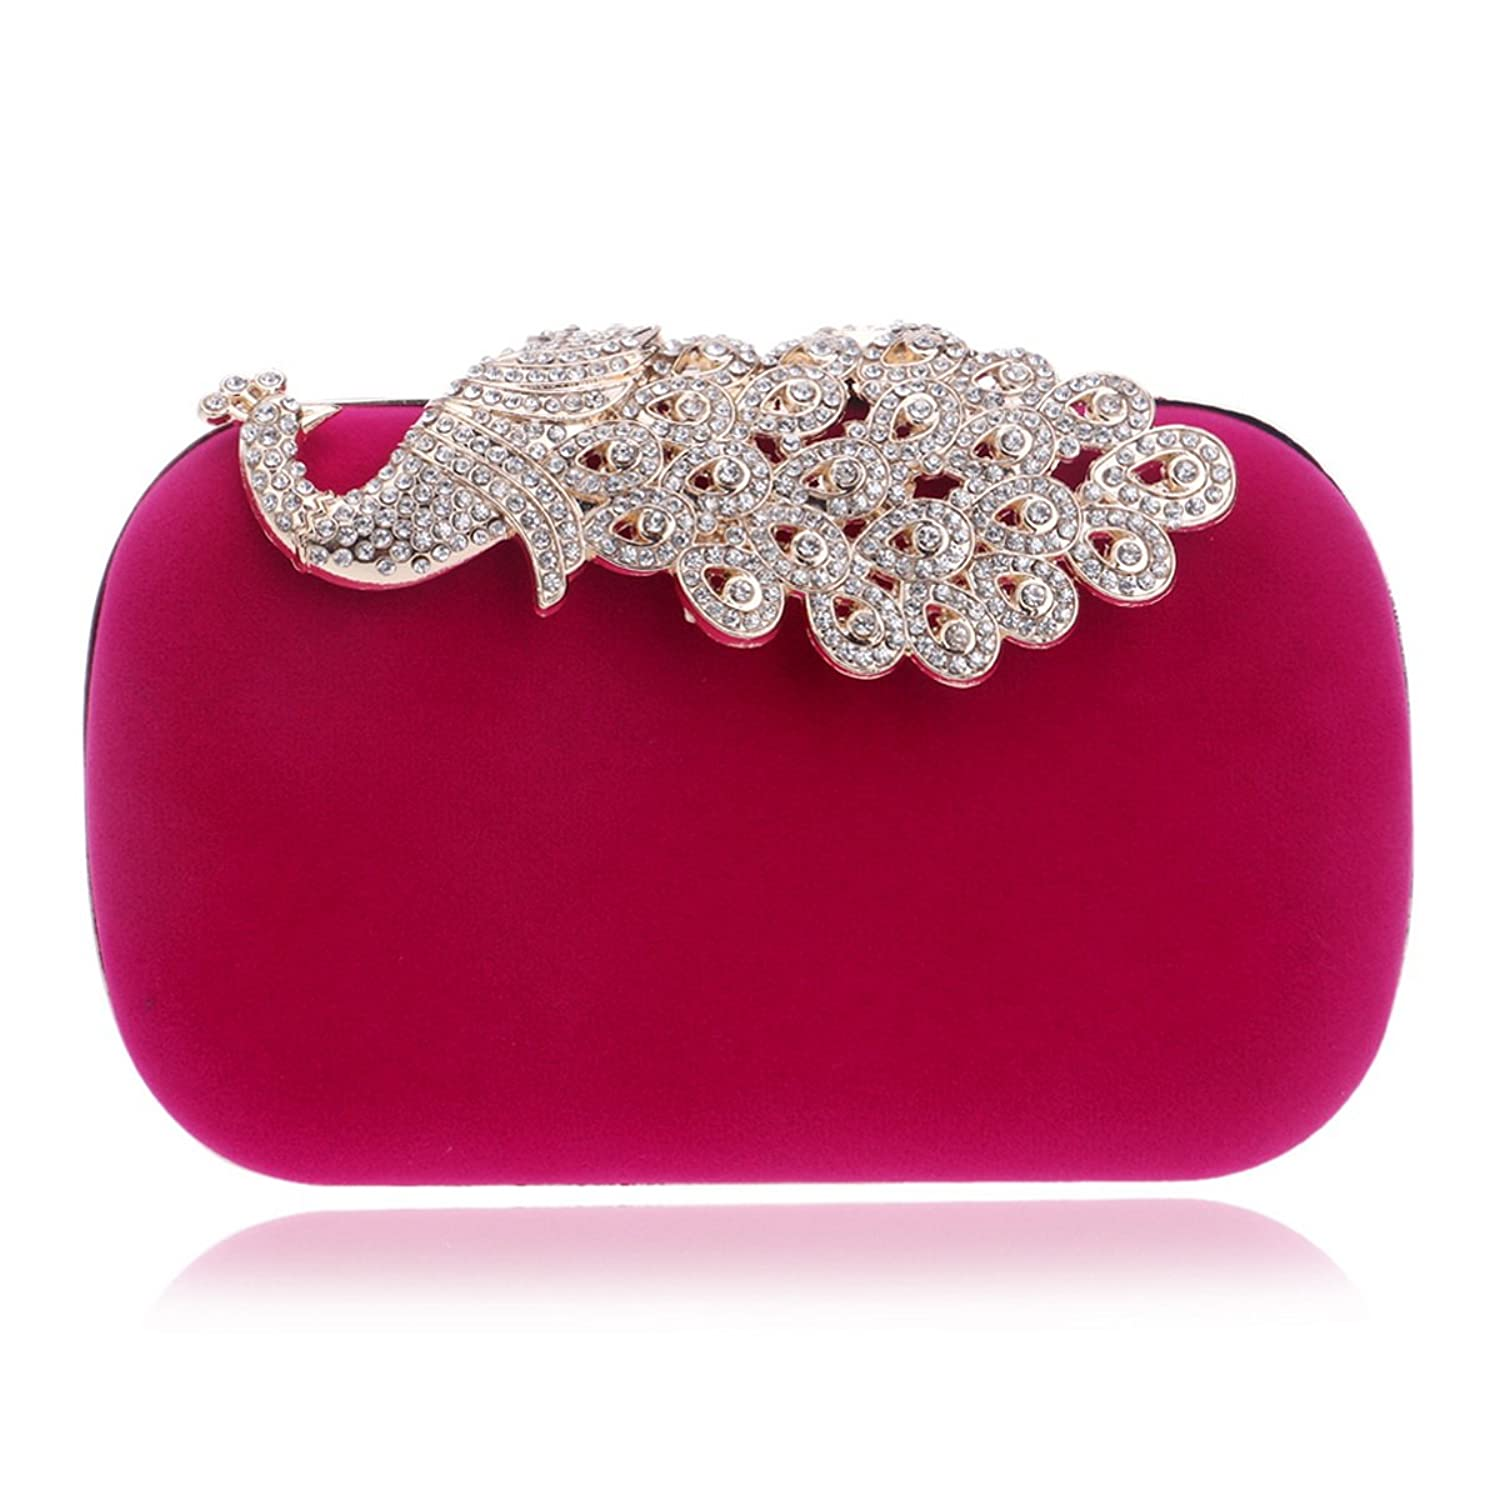 HAPPYTIMEBELT Women s Handmade Velvet Wedding Clutch with Rhinestone  Peacock Clasp high-quality e97503f9bd211